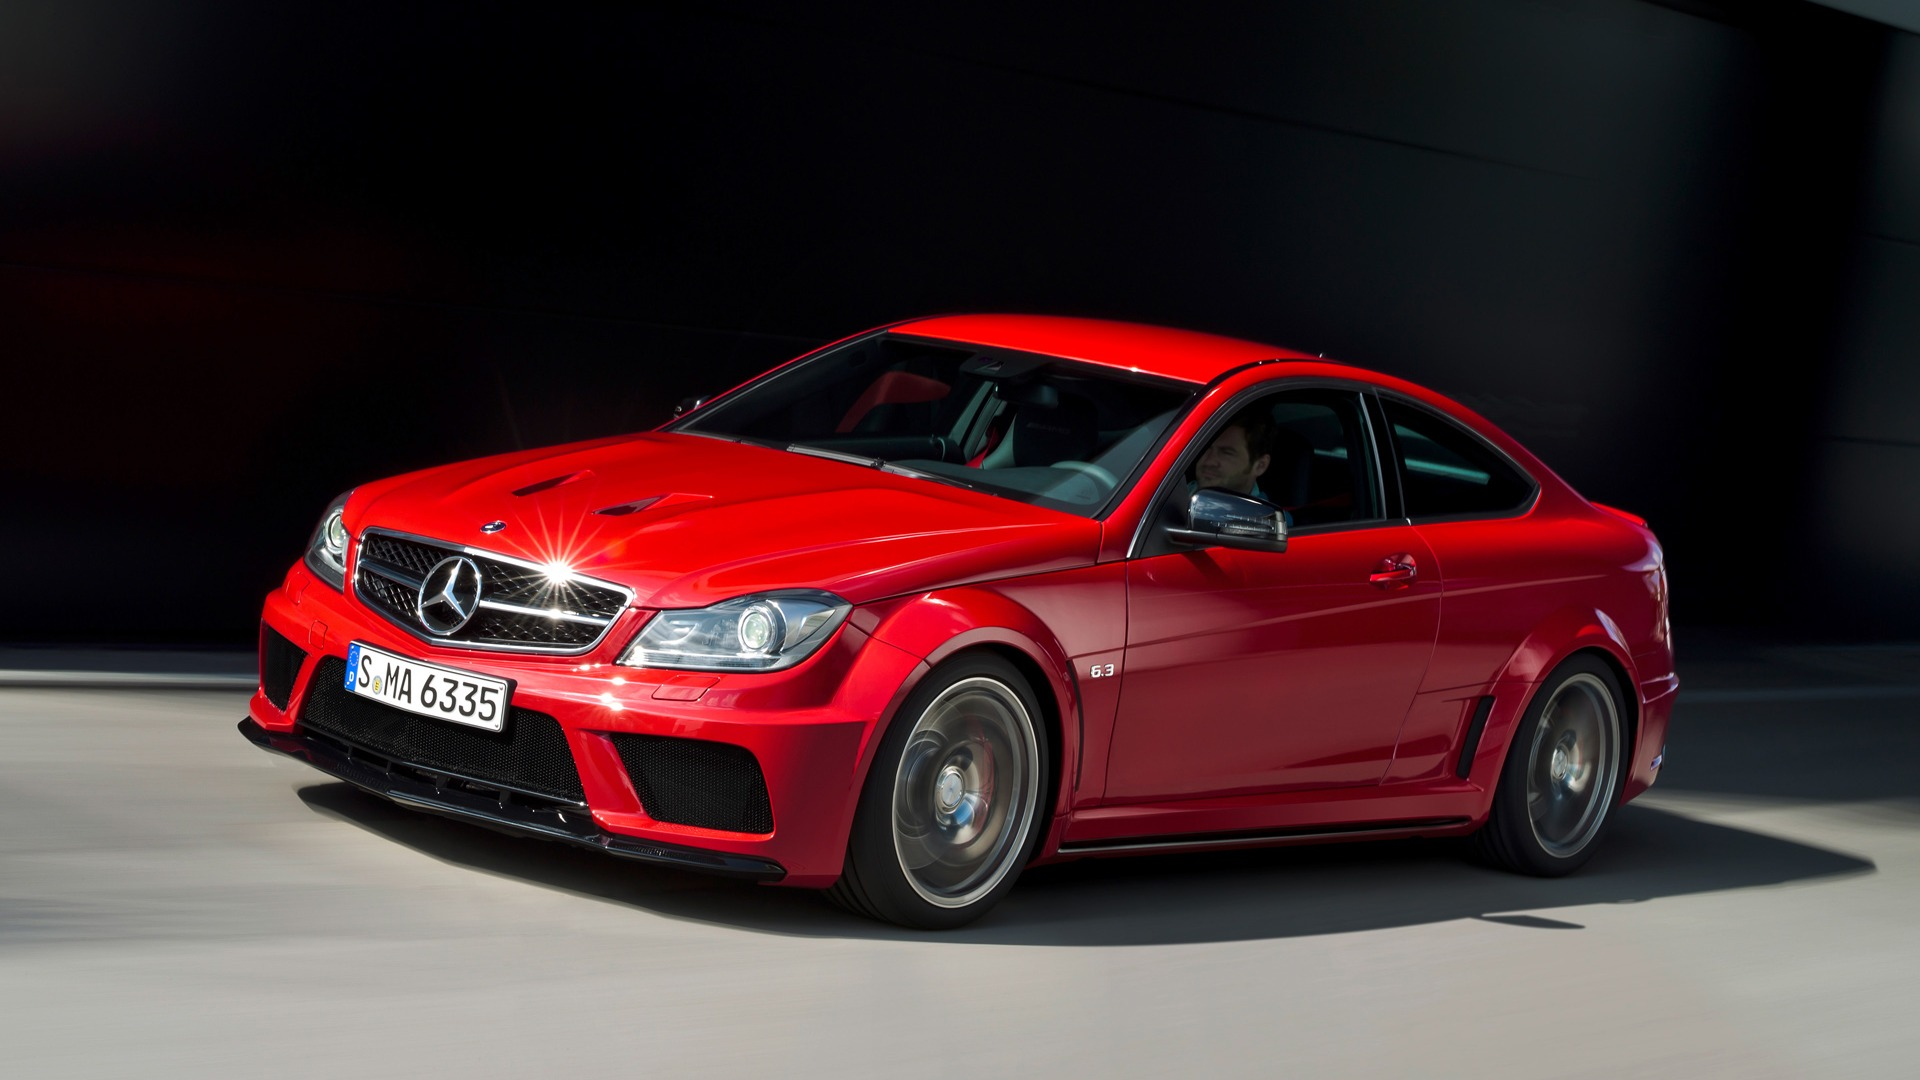 Mercedes Benz C63 Amg Coupe Black Series 2011 Hd Wallpapers 4